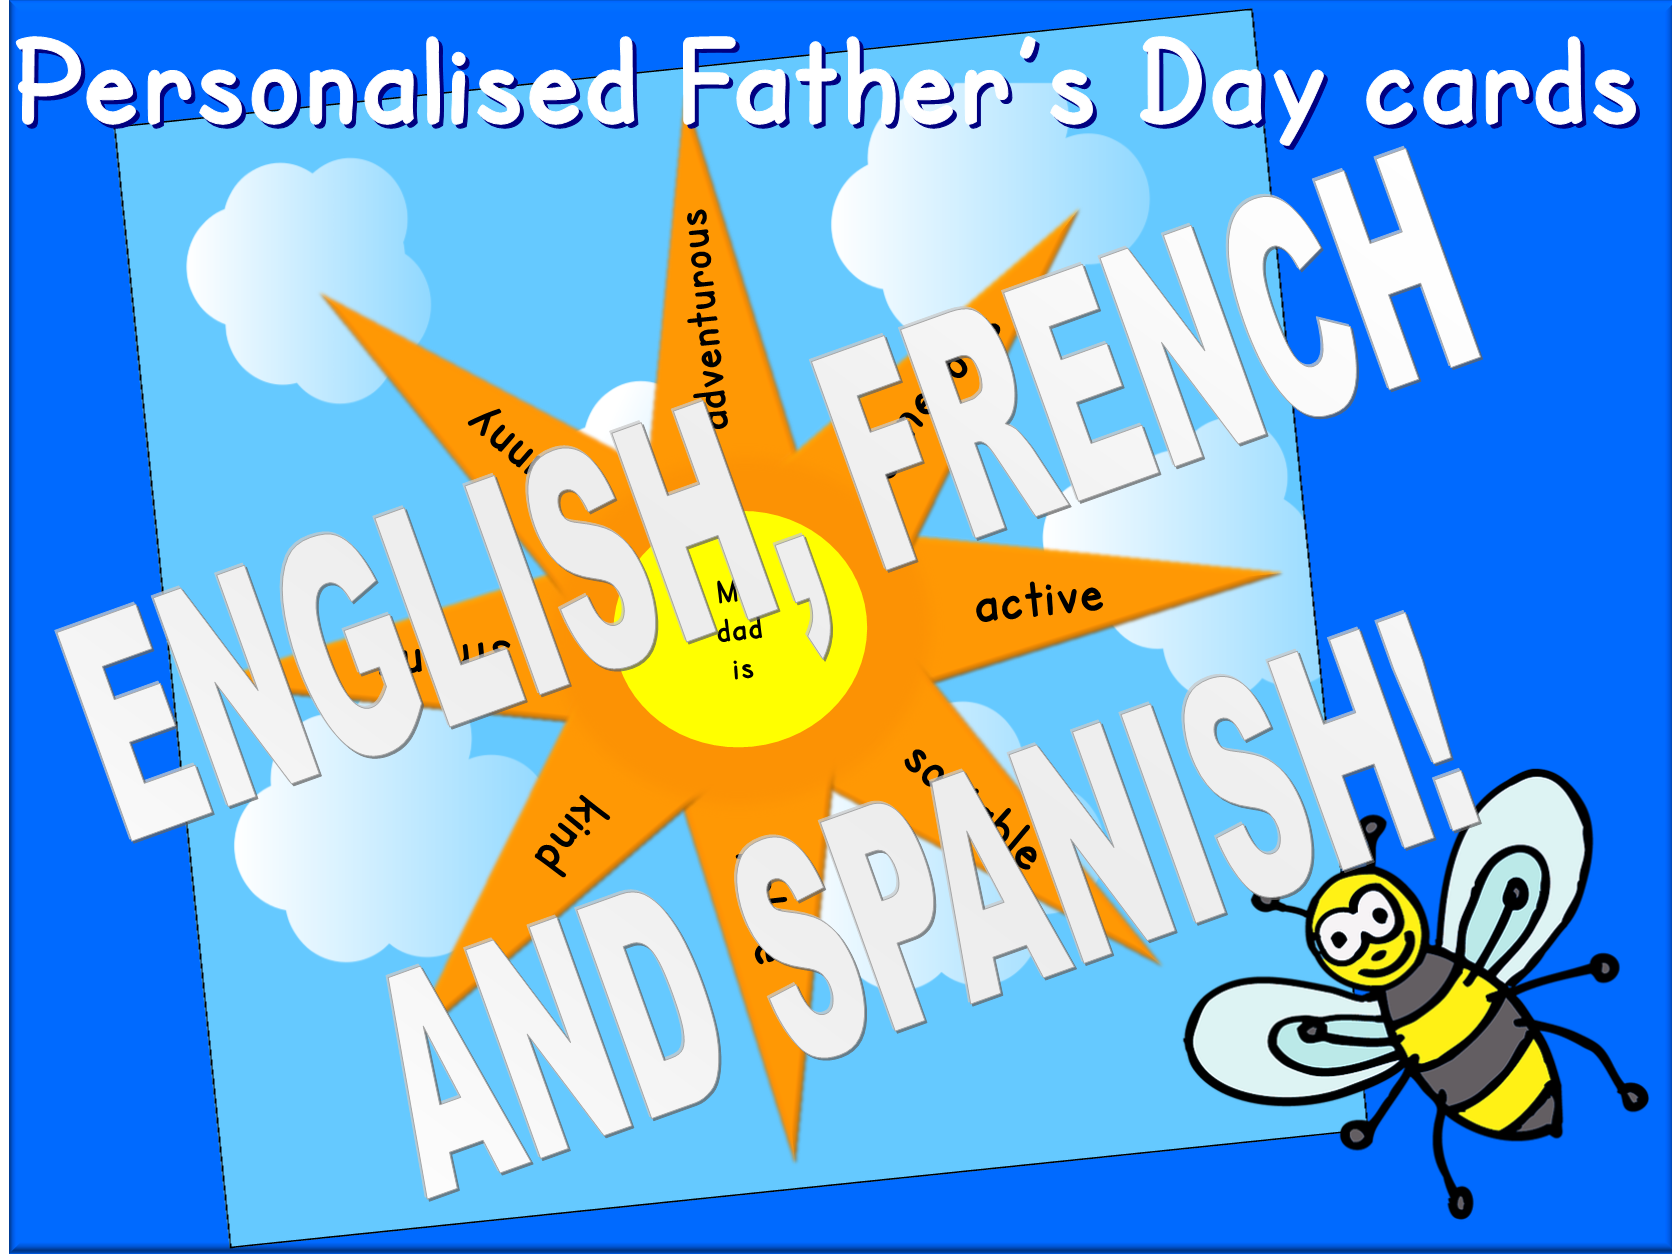 Personalised Father's Day cards in French, Spanish and English